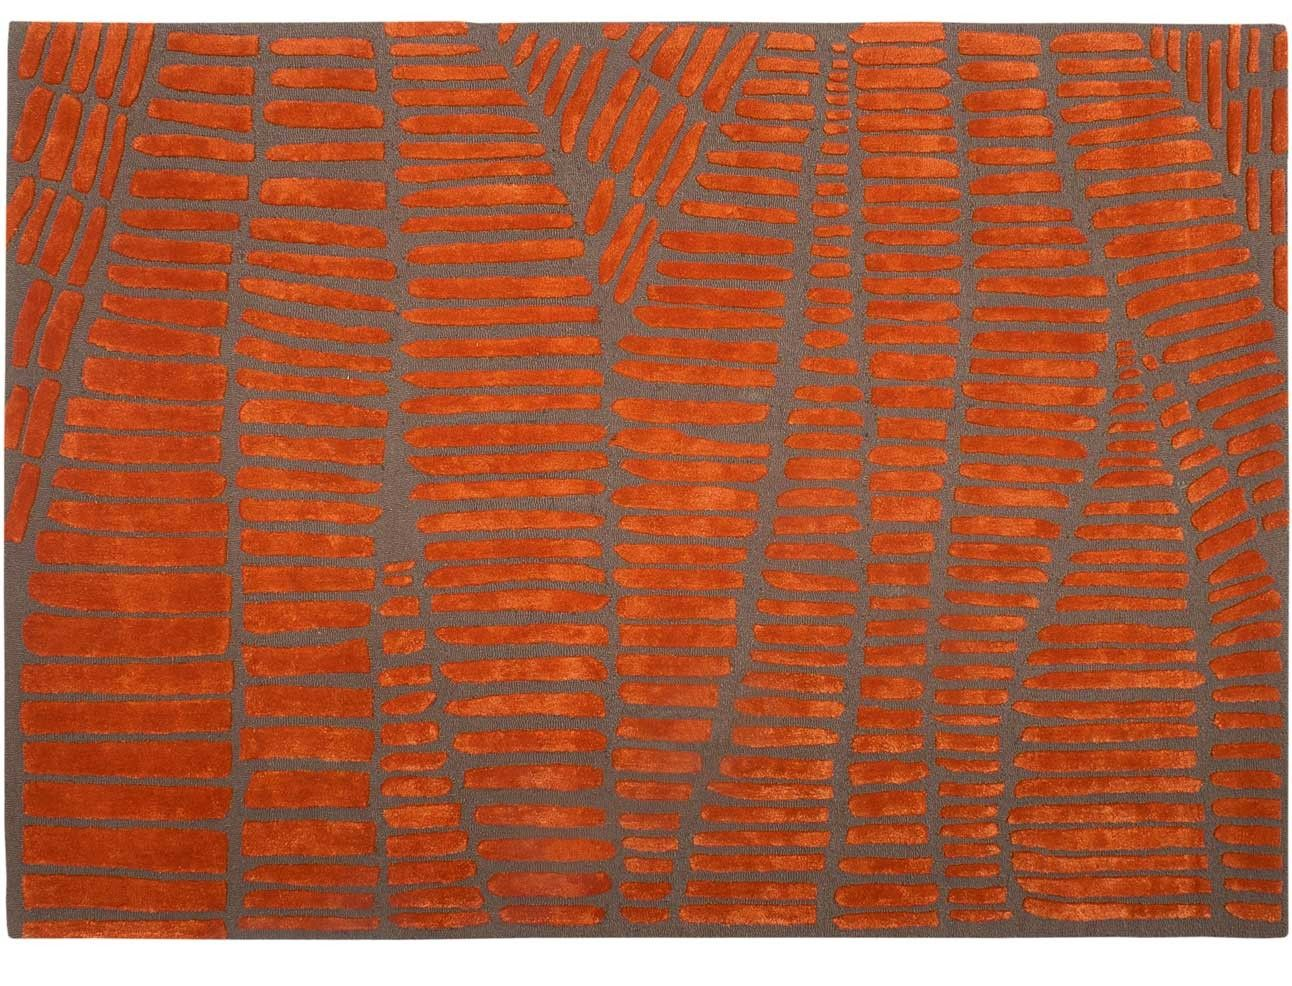 Tapis Orange Et Gris Enchanteur Tapis Orange Et Gris Avec Tapis Collection Photo Jpg 1